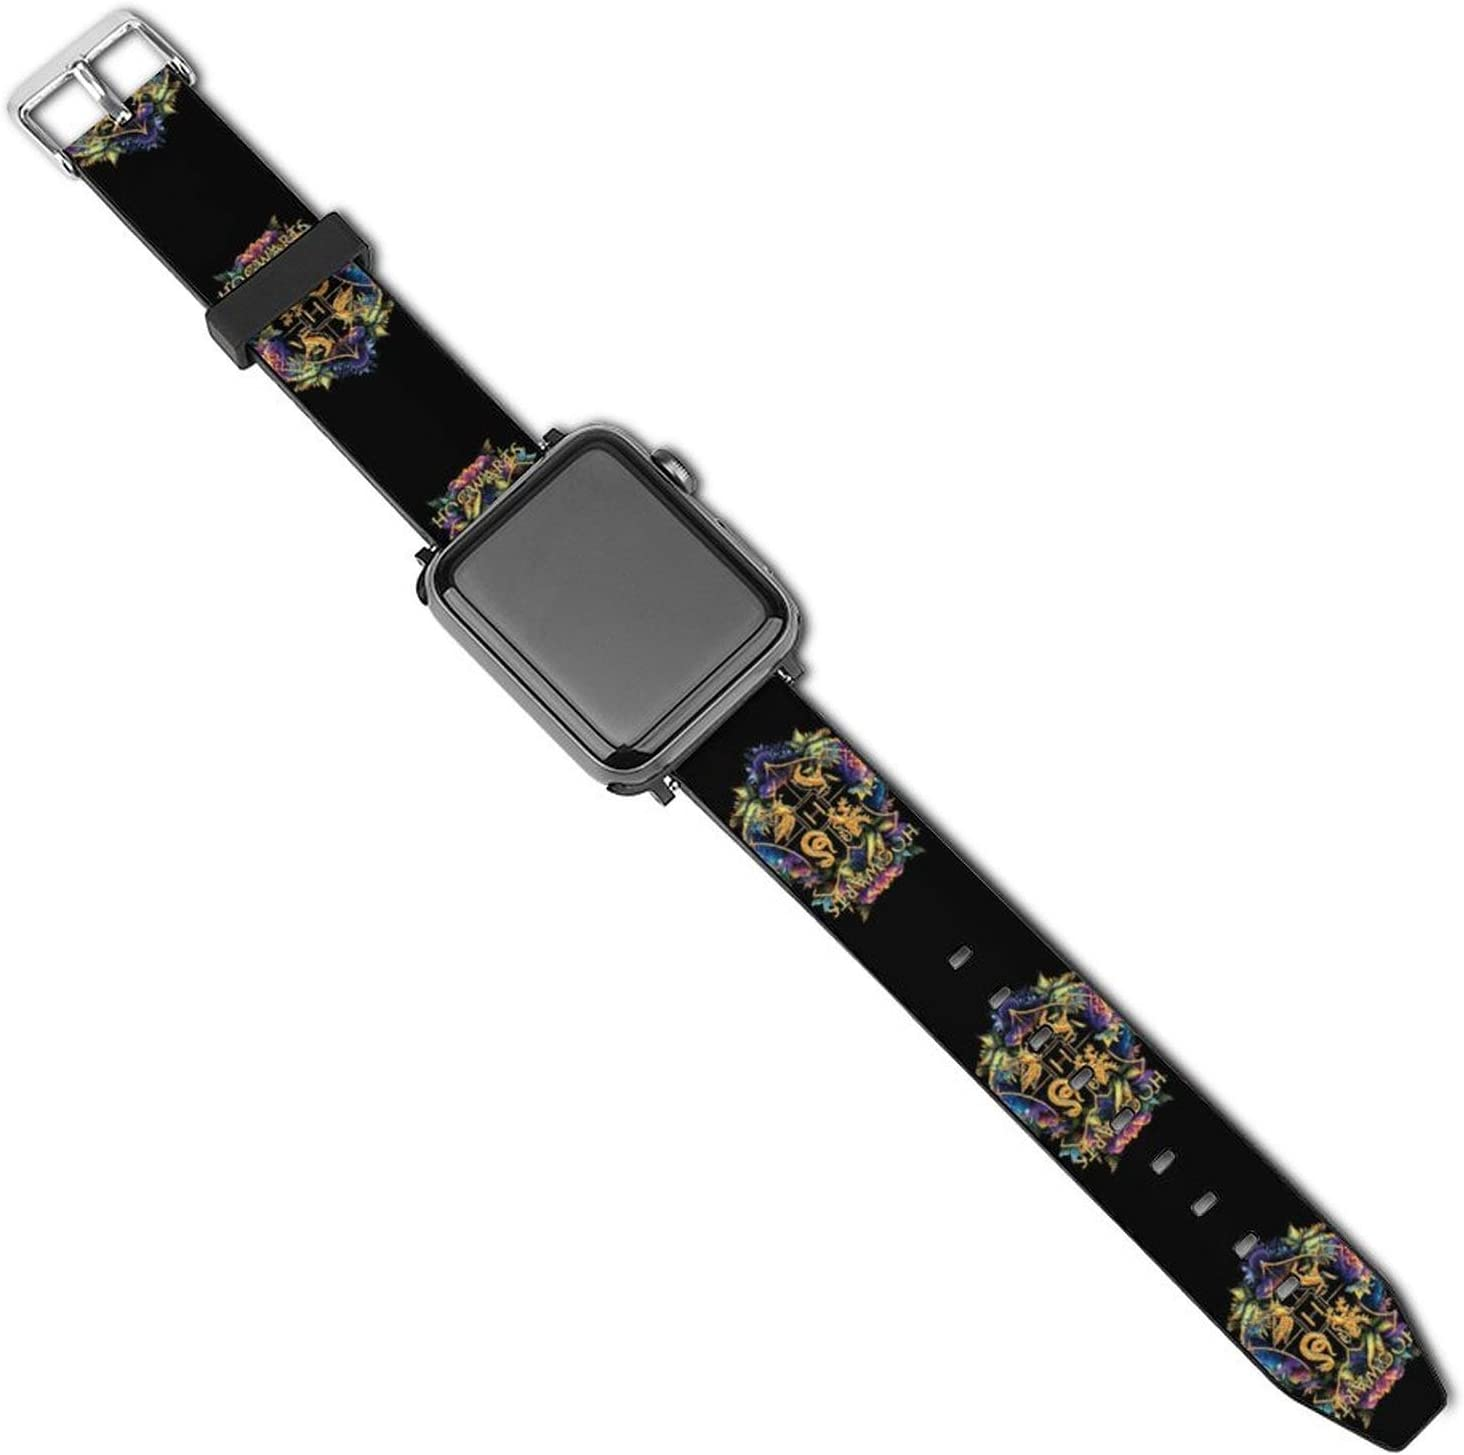 Ha-rry Pot-TER Compatible for Apple Watch Series SE 6 5 4 3 2 1 & 44mm 40mm 42mm 38mm iWatch Replacement Strap Leather Bands Series (Black, 44/42 mm)